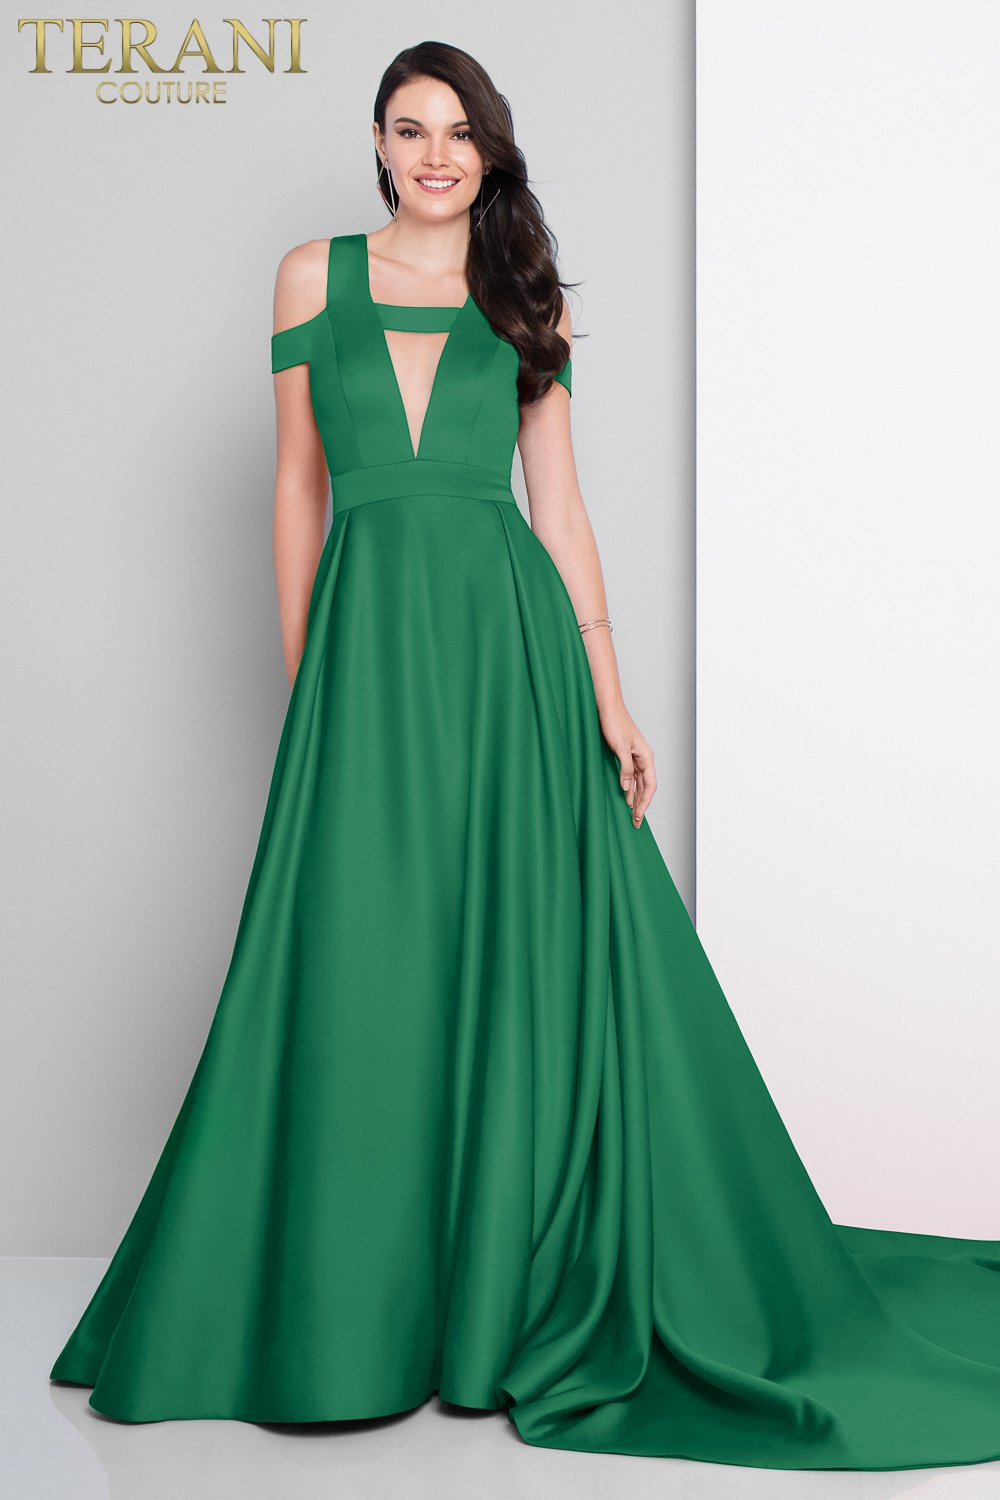 Long Bustle Train Off the Shoulder Ball Gown - 1812P5882X